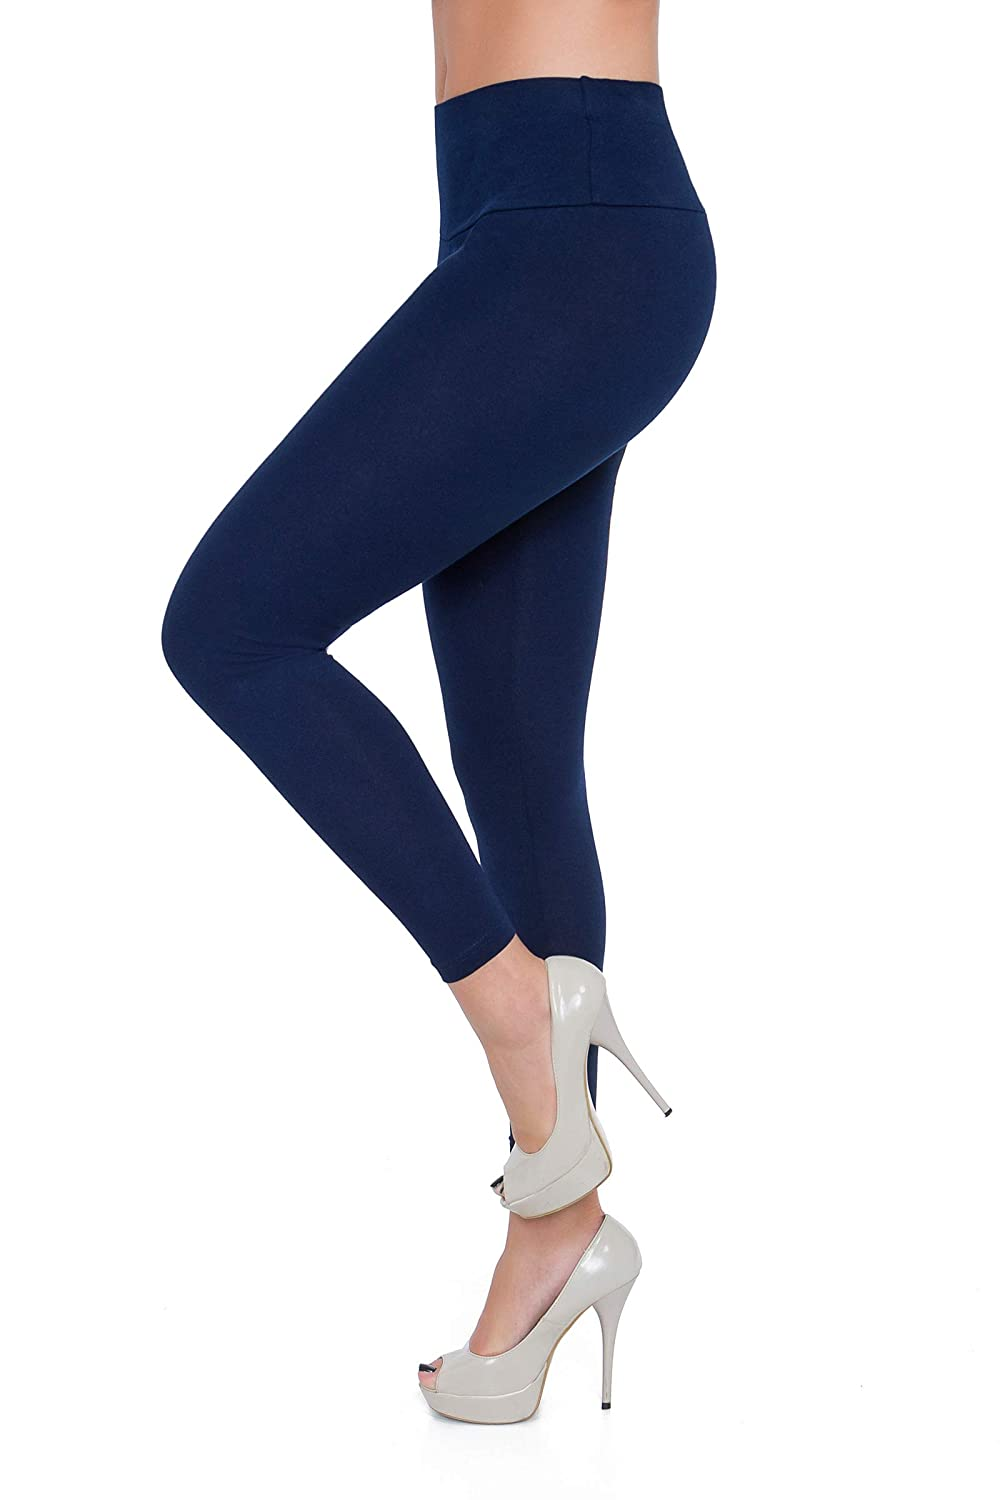 FUTURO FASHION Womens High Waisted Leggings Classic and Winter Cotton Plus Size LWP